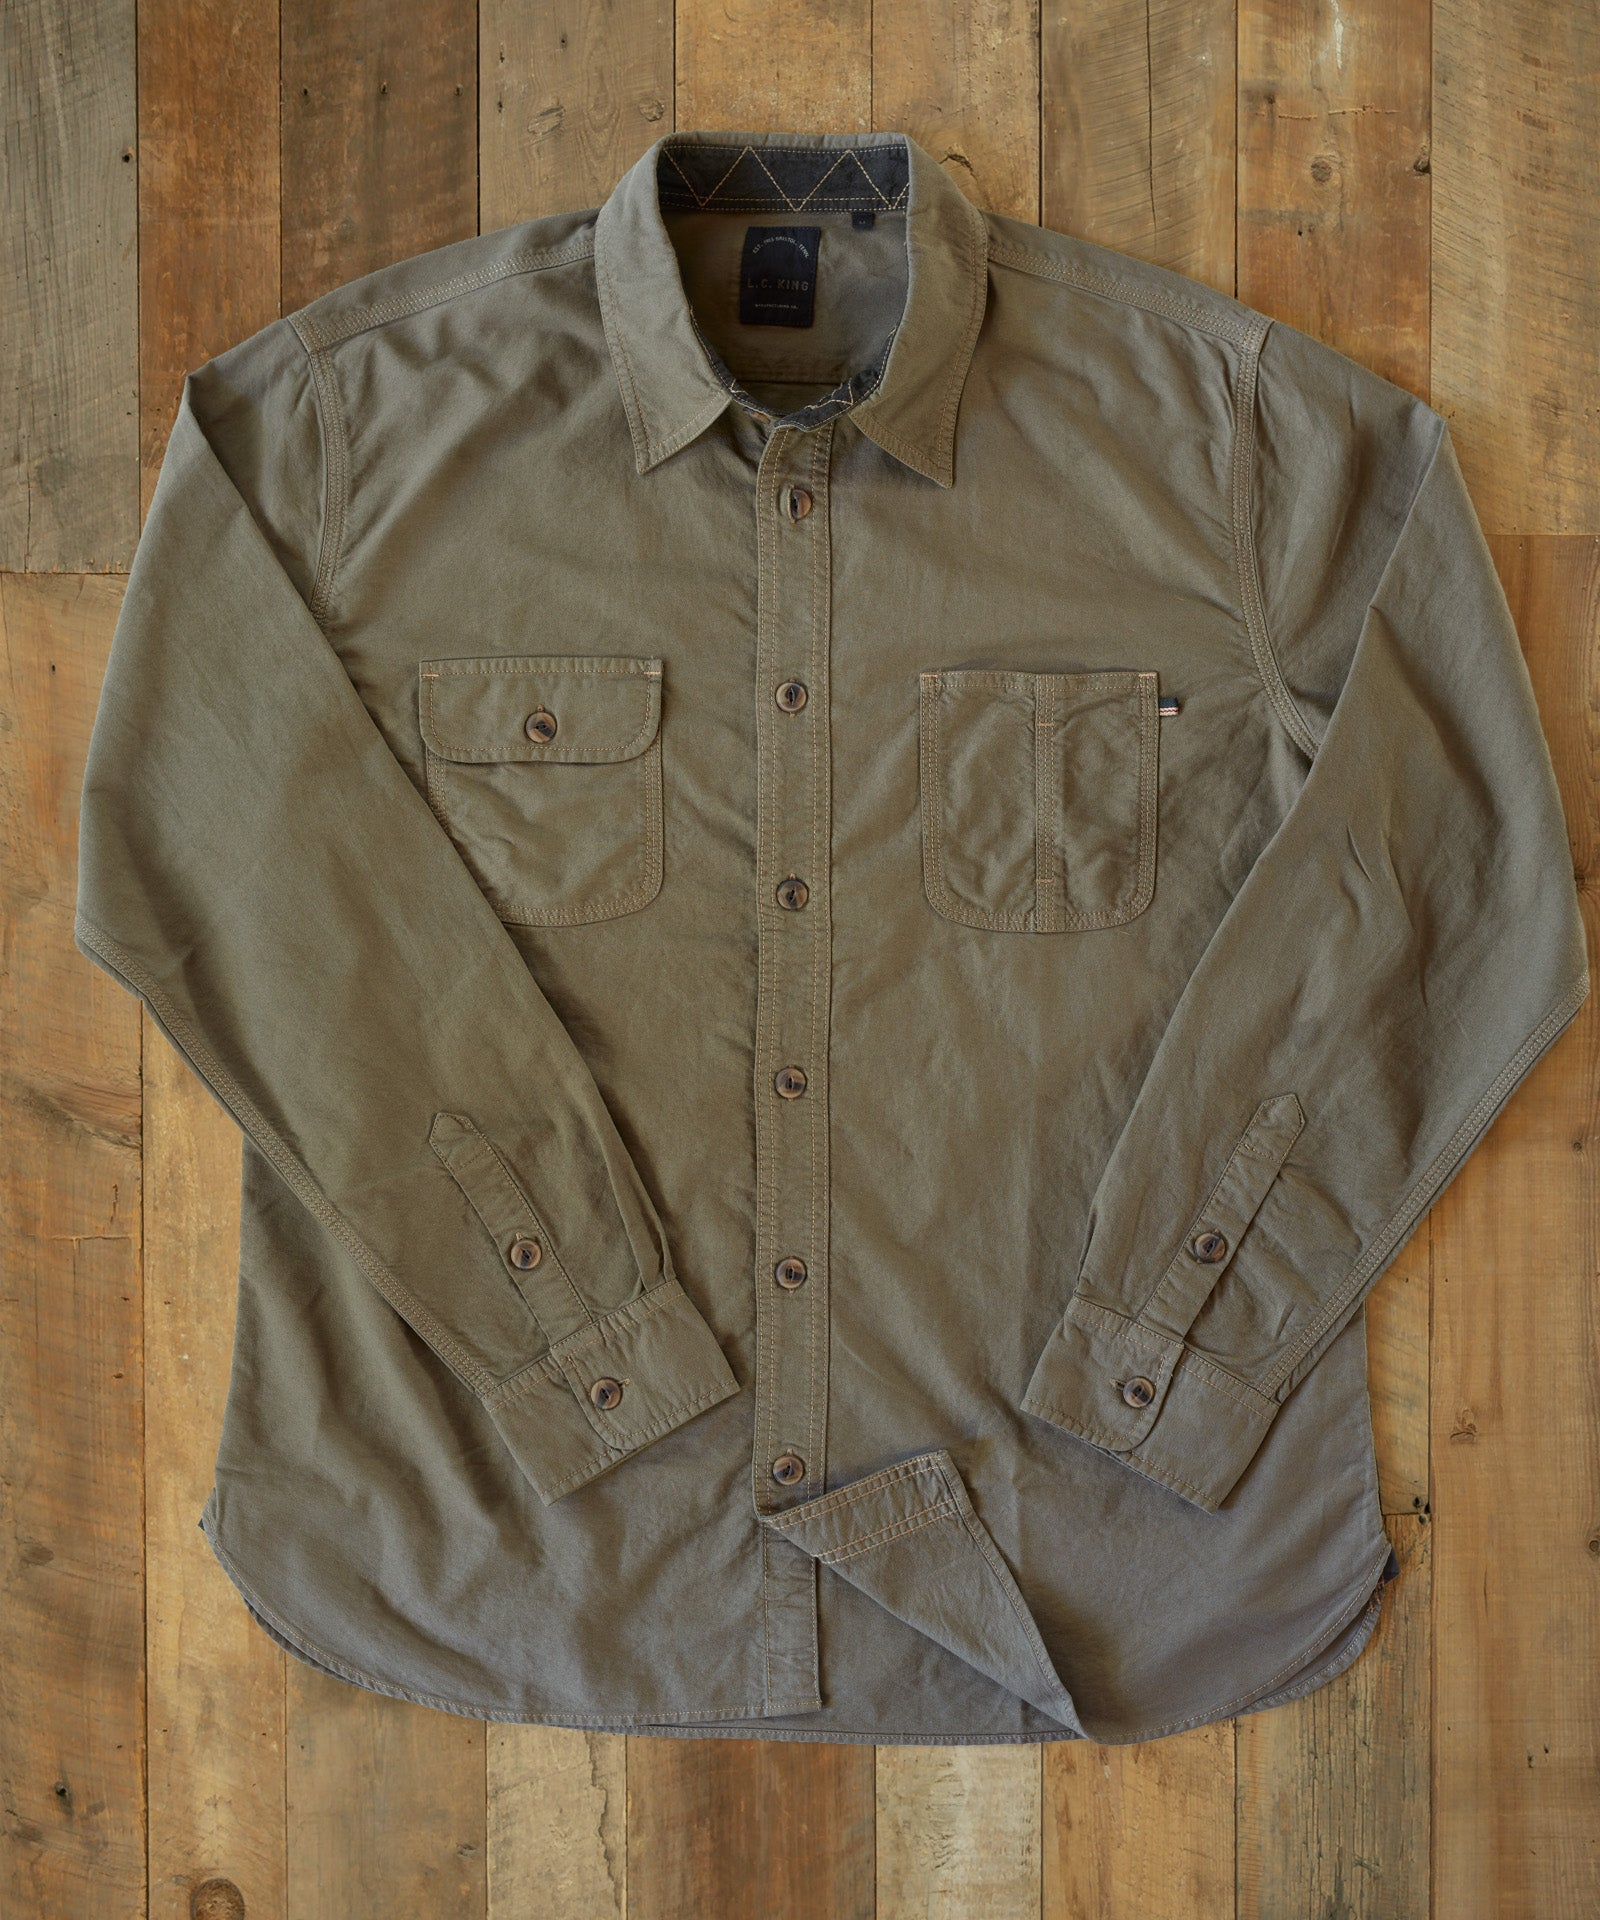 Olive DUCK Work Shirt